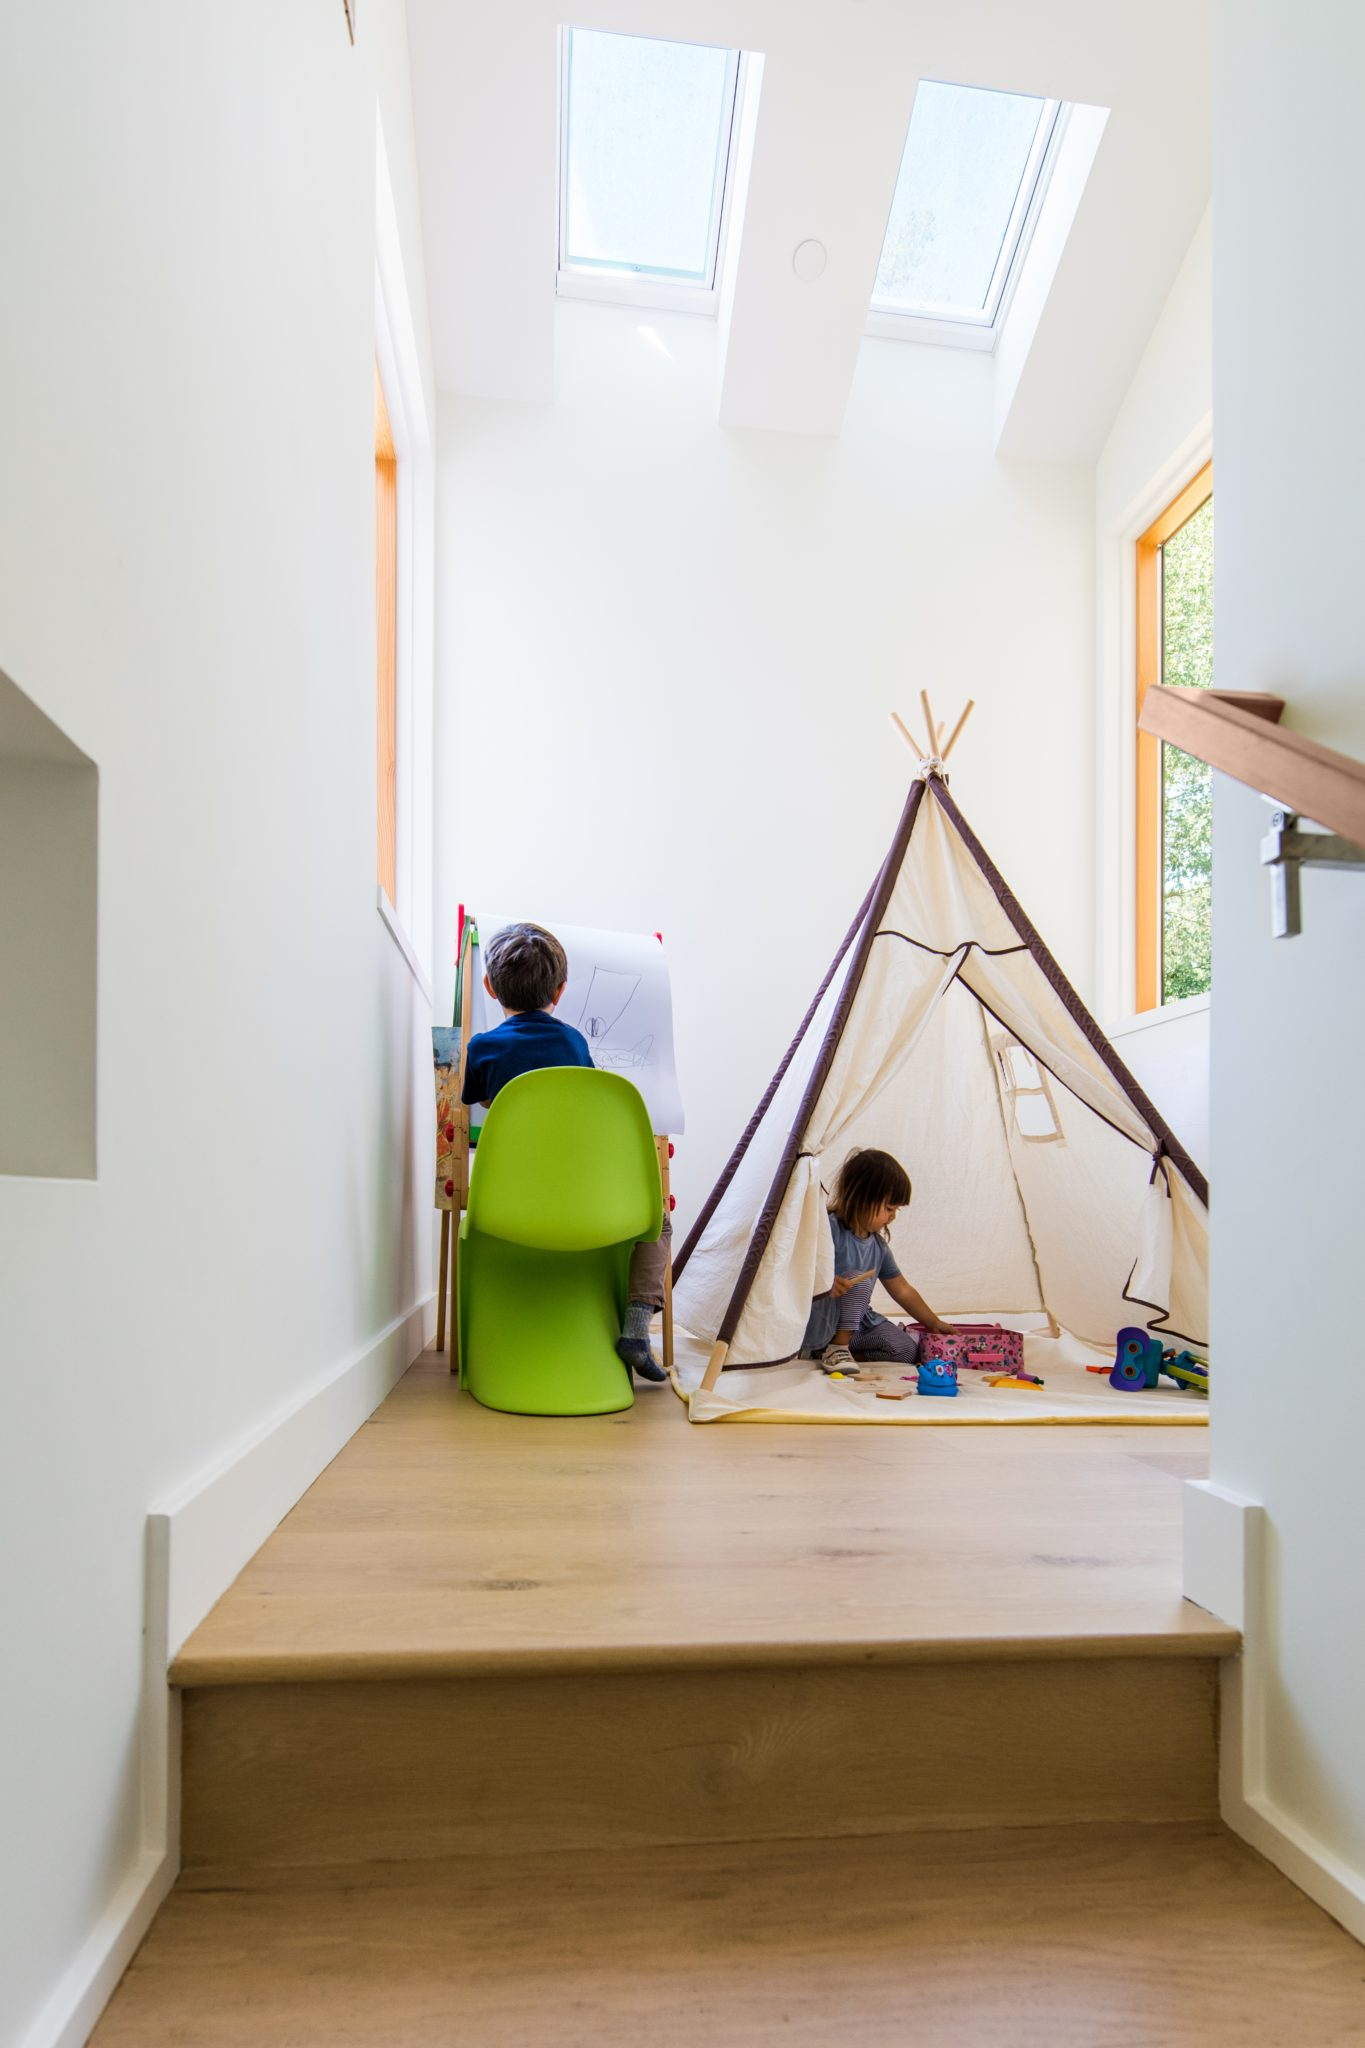 The extended stair landing is another example of a space that can naturally change as the family grows. Right now it can be used as a play space for the children, while in the future, it can be outfitted with a desk for the parents or used as a light-filled reading nook.